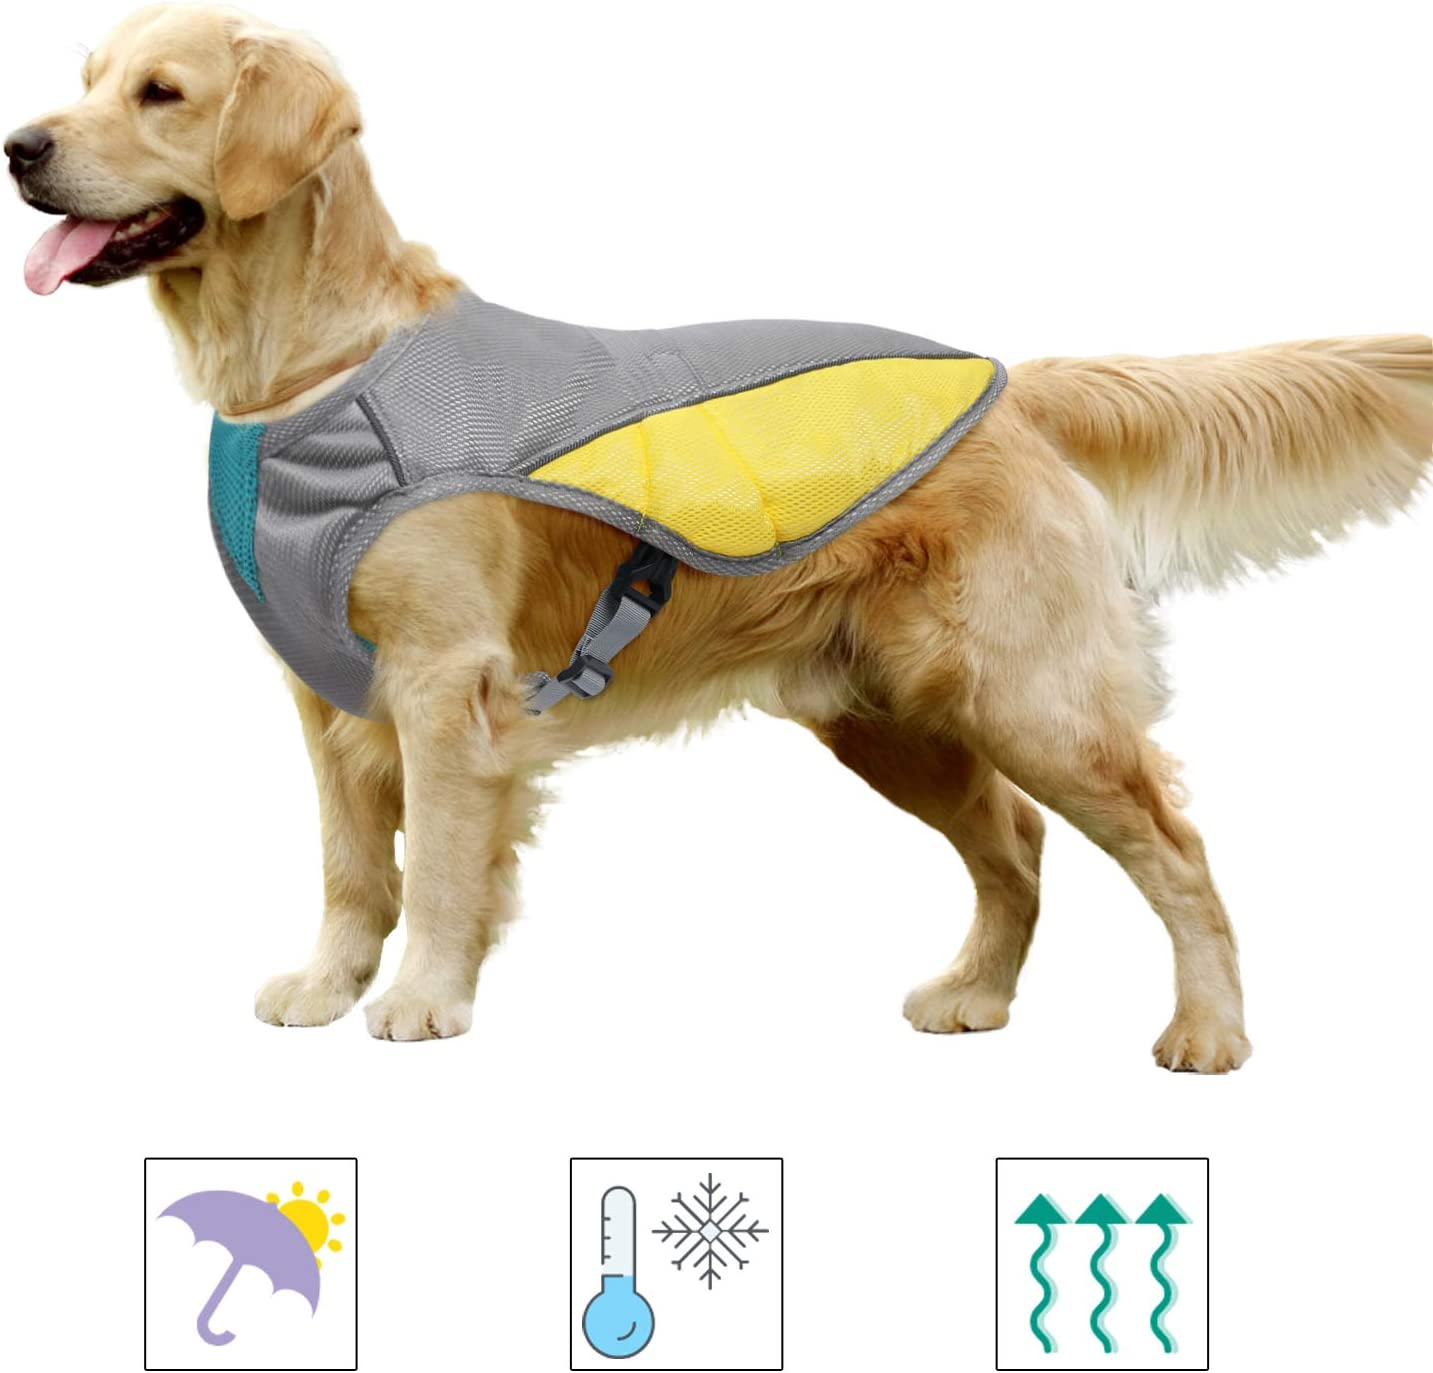 MIGOHI Dog Cooling Vest, Cooling Coat for Dogs, Outdoor Dog Cooler Jacket Harness, Reflective Pet Safety Vest for Small, Medium, Large Dog Breeds